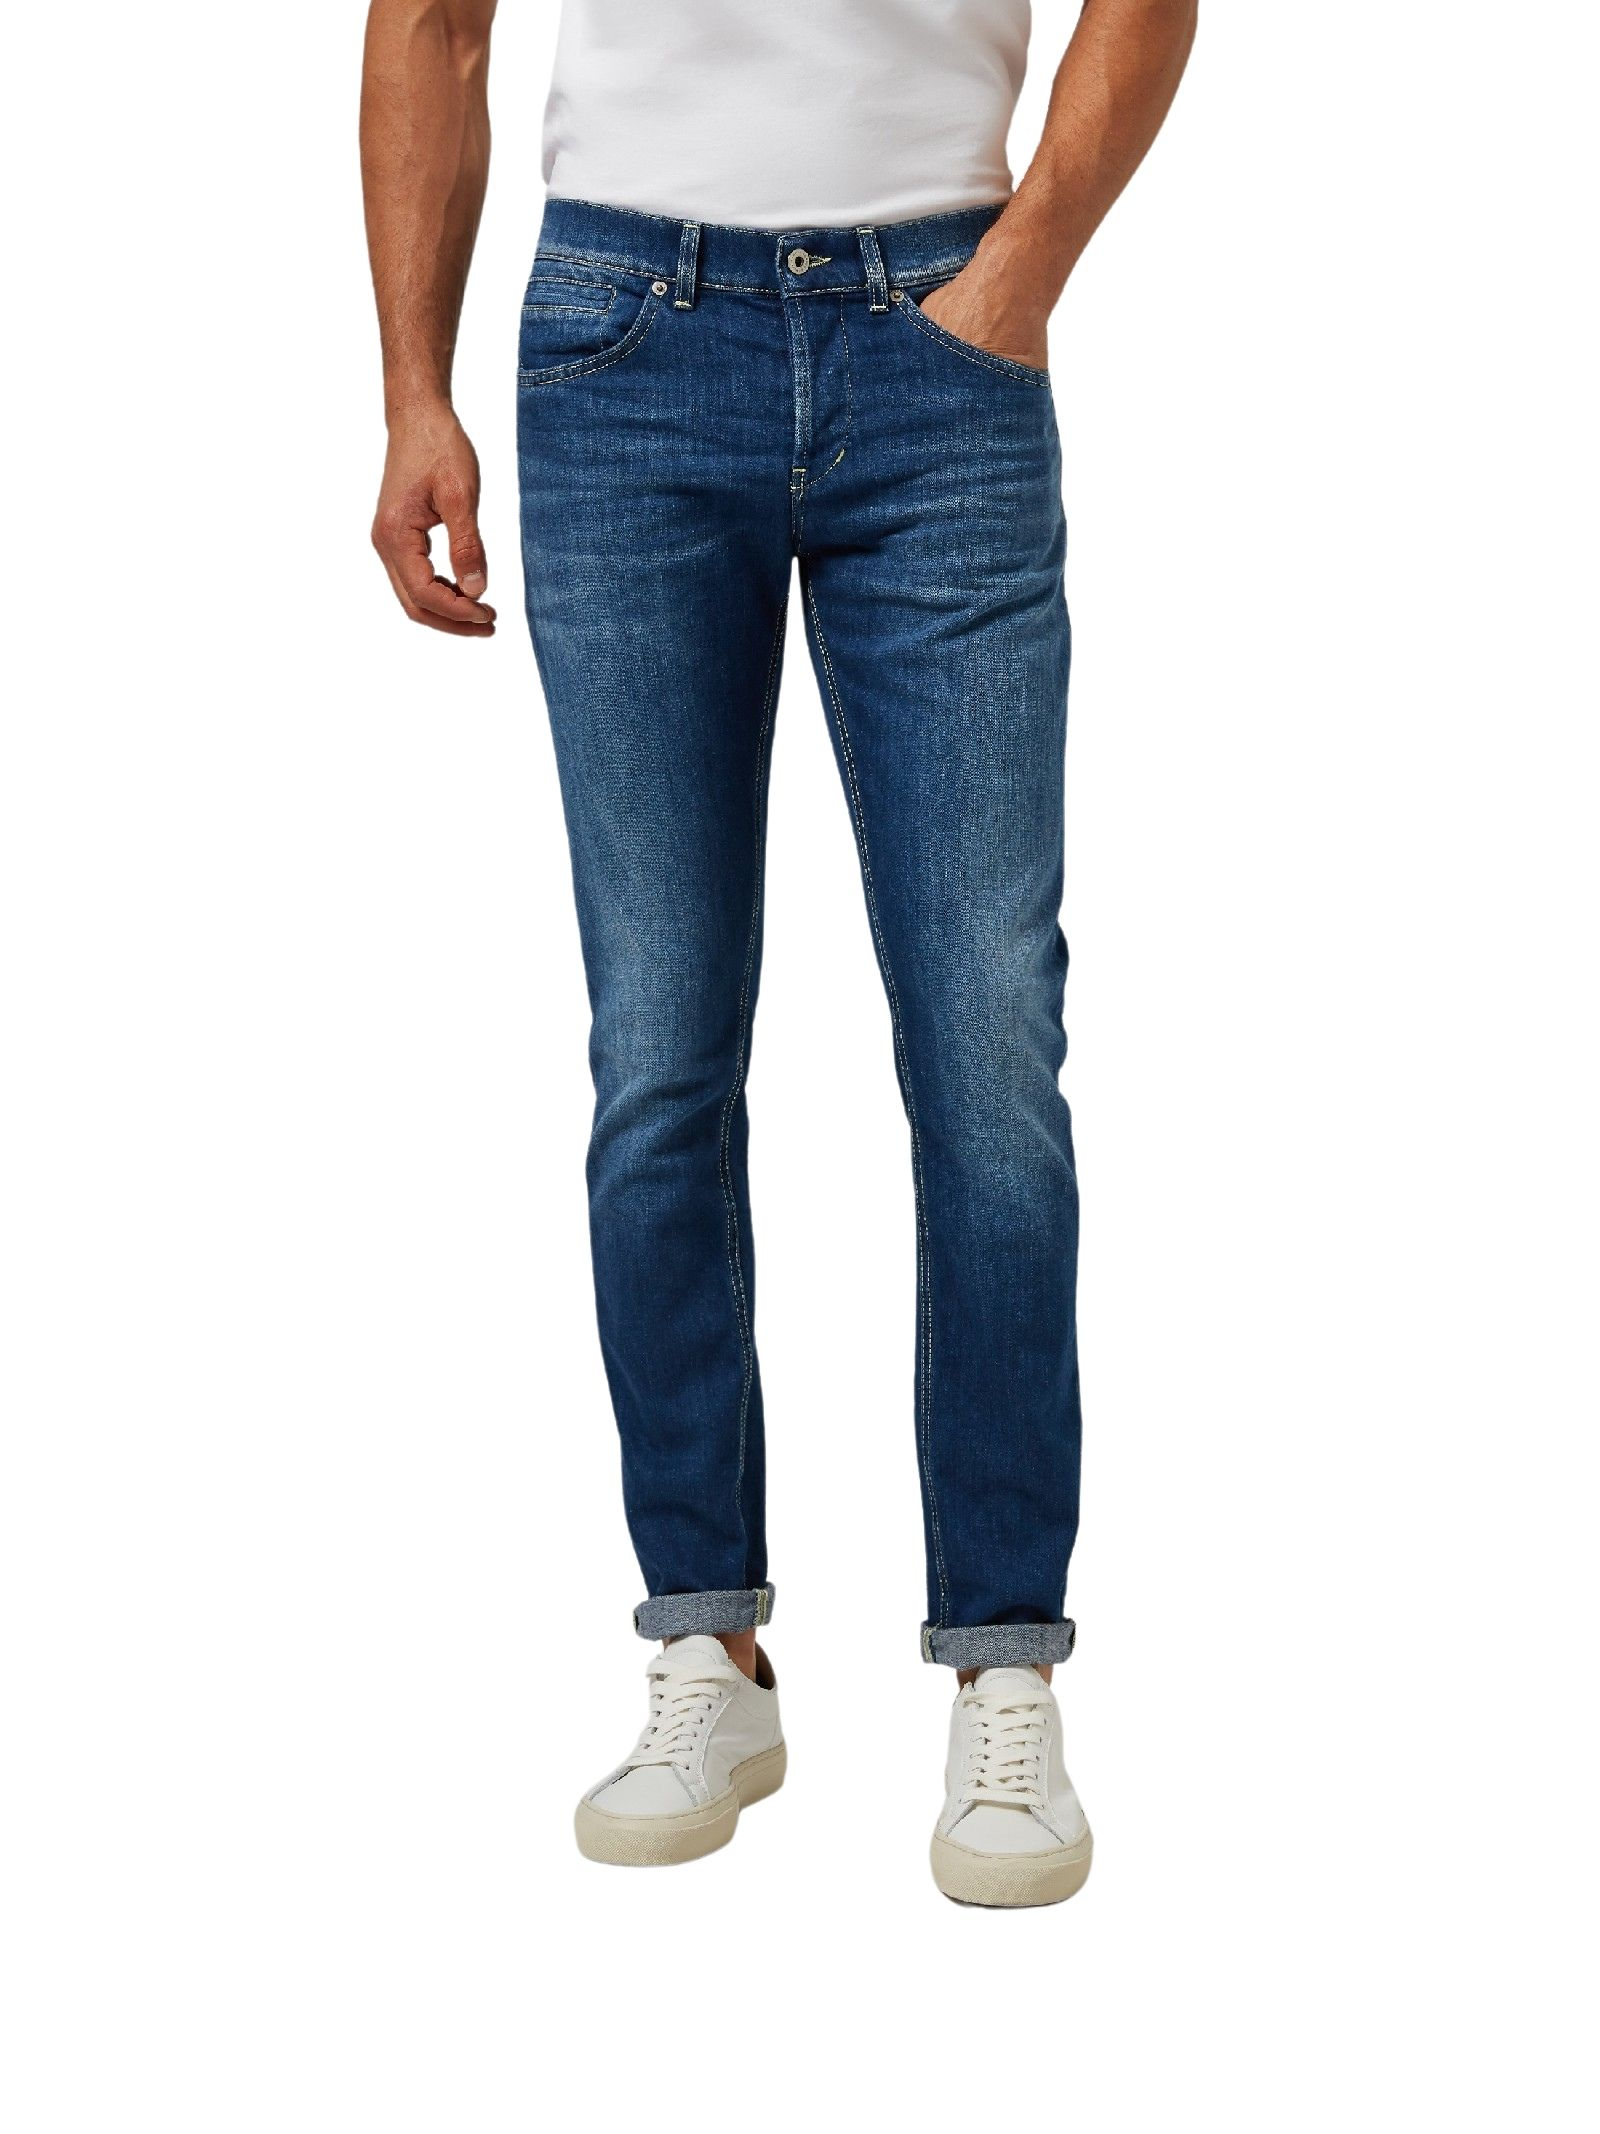 Jeans skinny blu scuro DONDUP | Jeans | UP232 DS0107UBB8